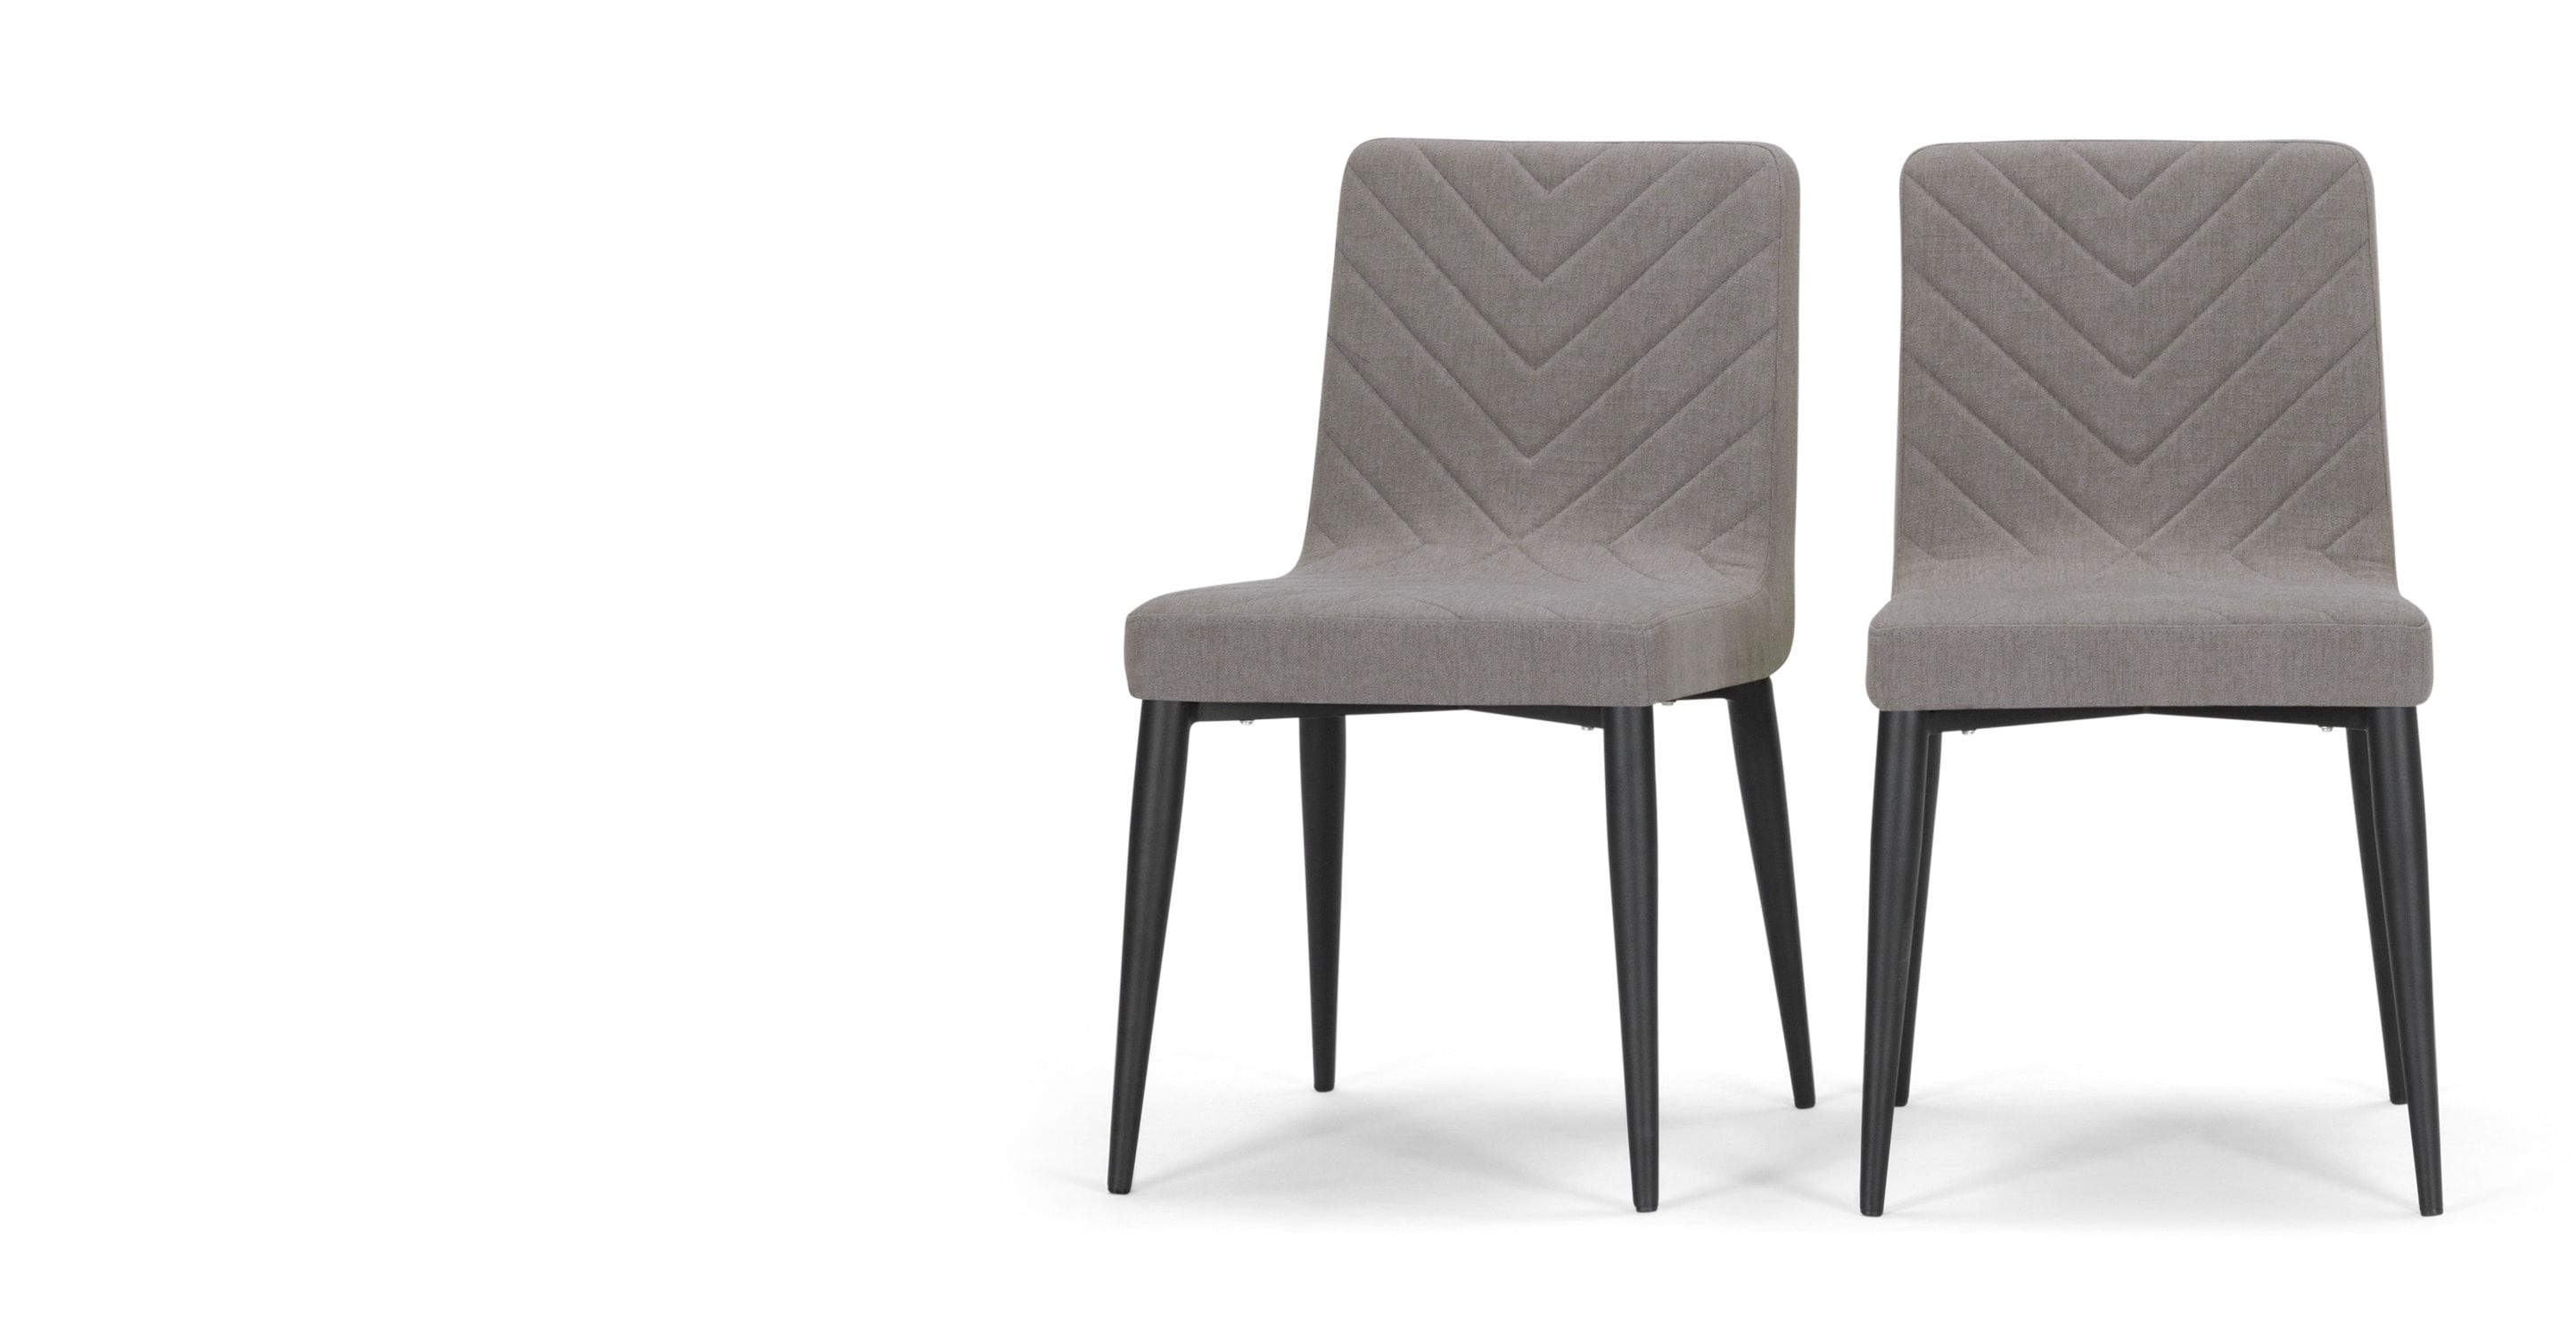 Grey Dining Room Chairs: Set Of 2 Dining Chairs In Graphite Grey Fabric, Lex